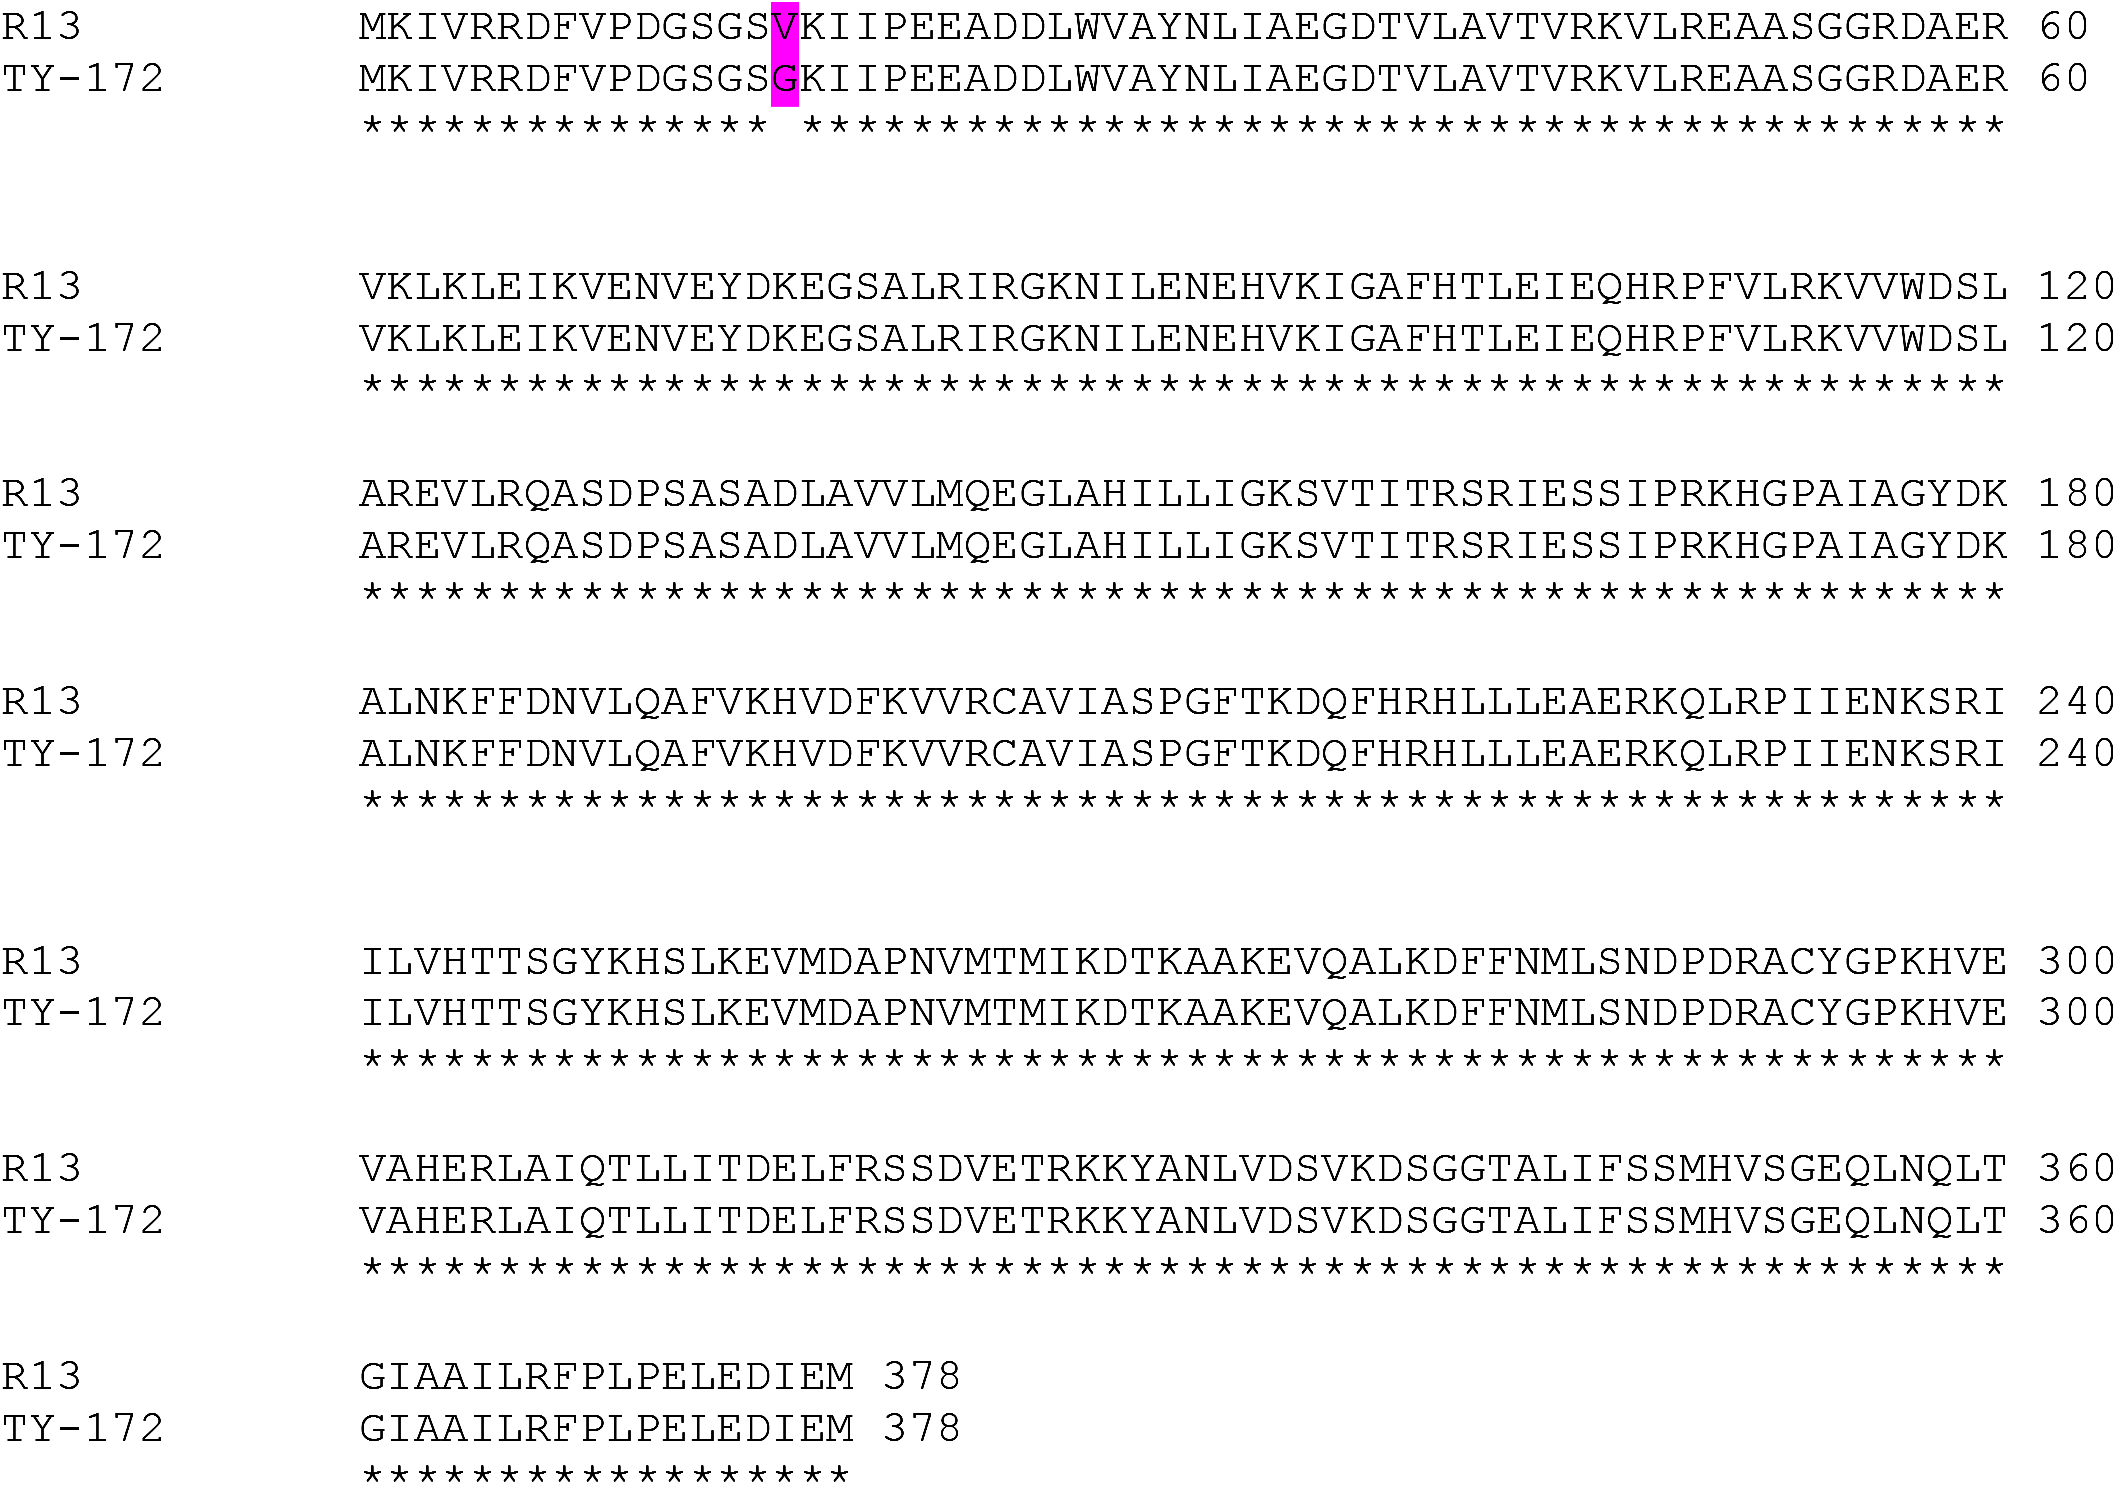 Amino-acid sequence of the <i>Pelo</i> gene in the resistant TY172 line compared to the susceptible line M-82.